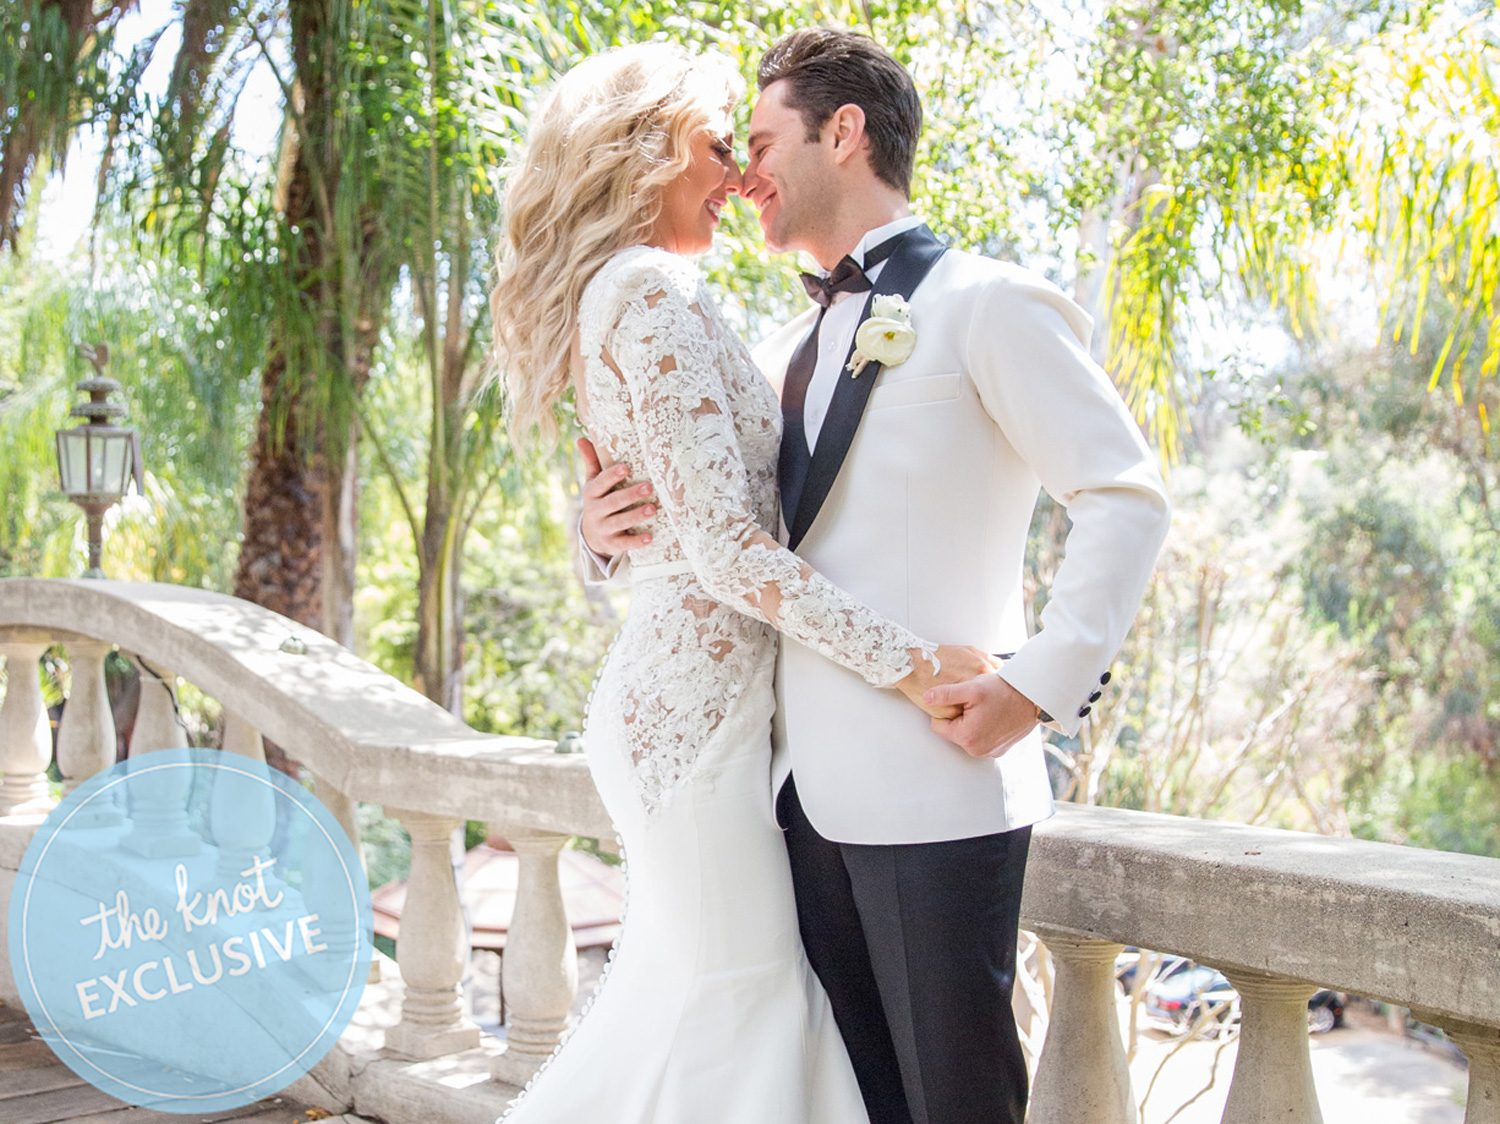 Emma Slater and Sasha Farber wedding photos album